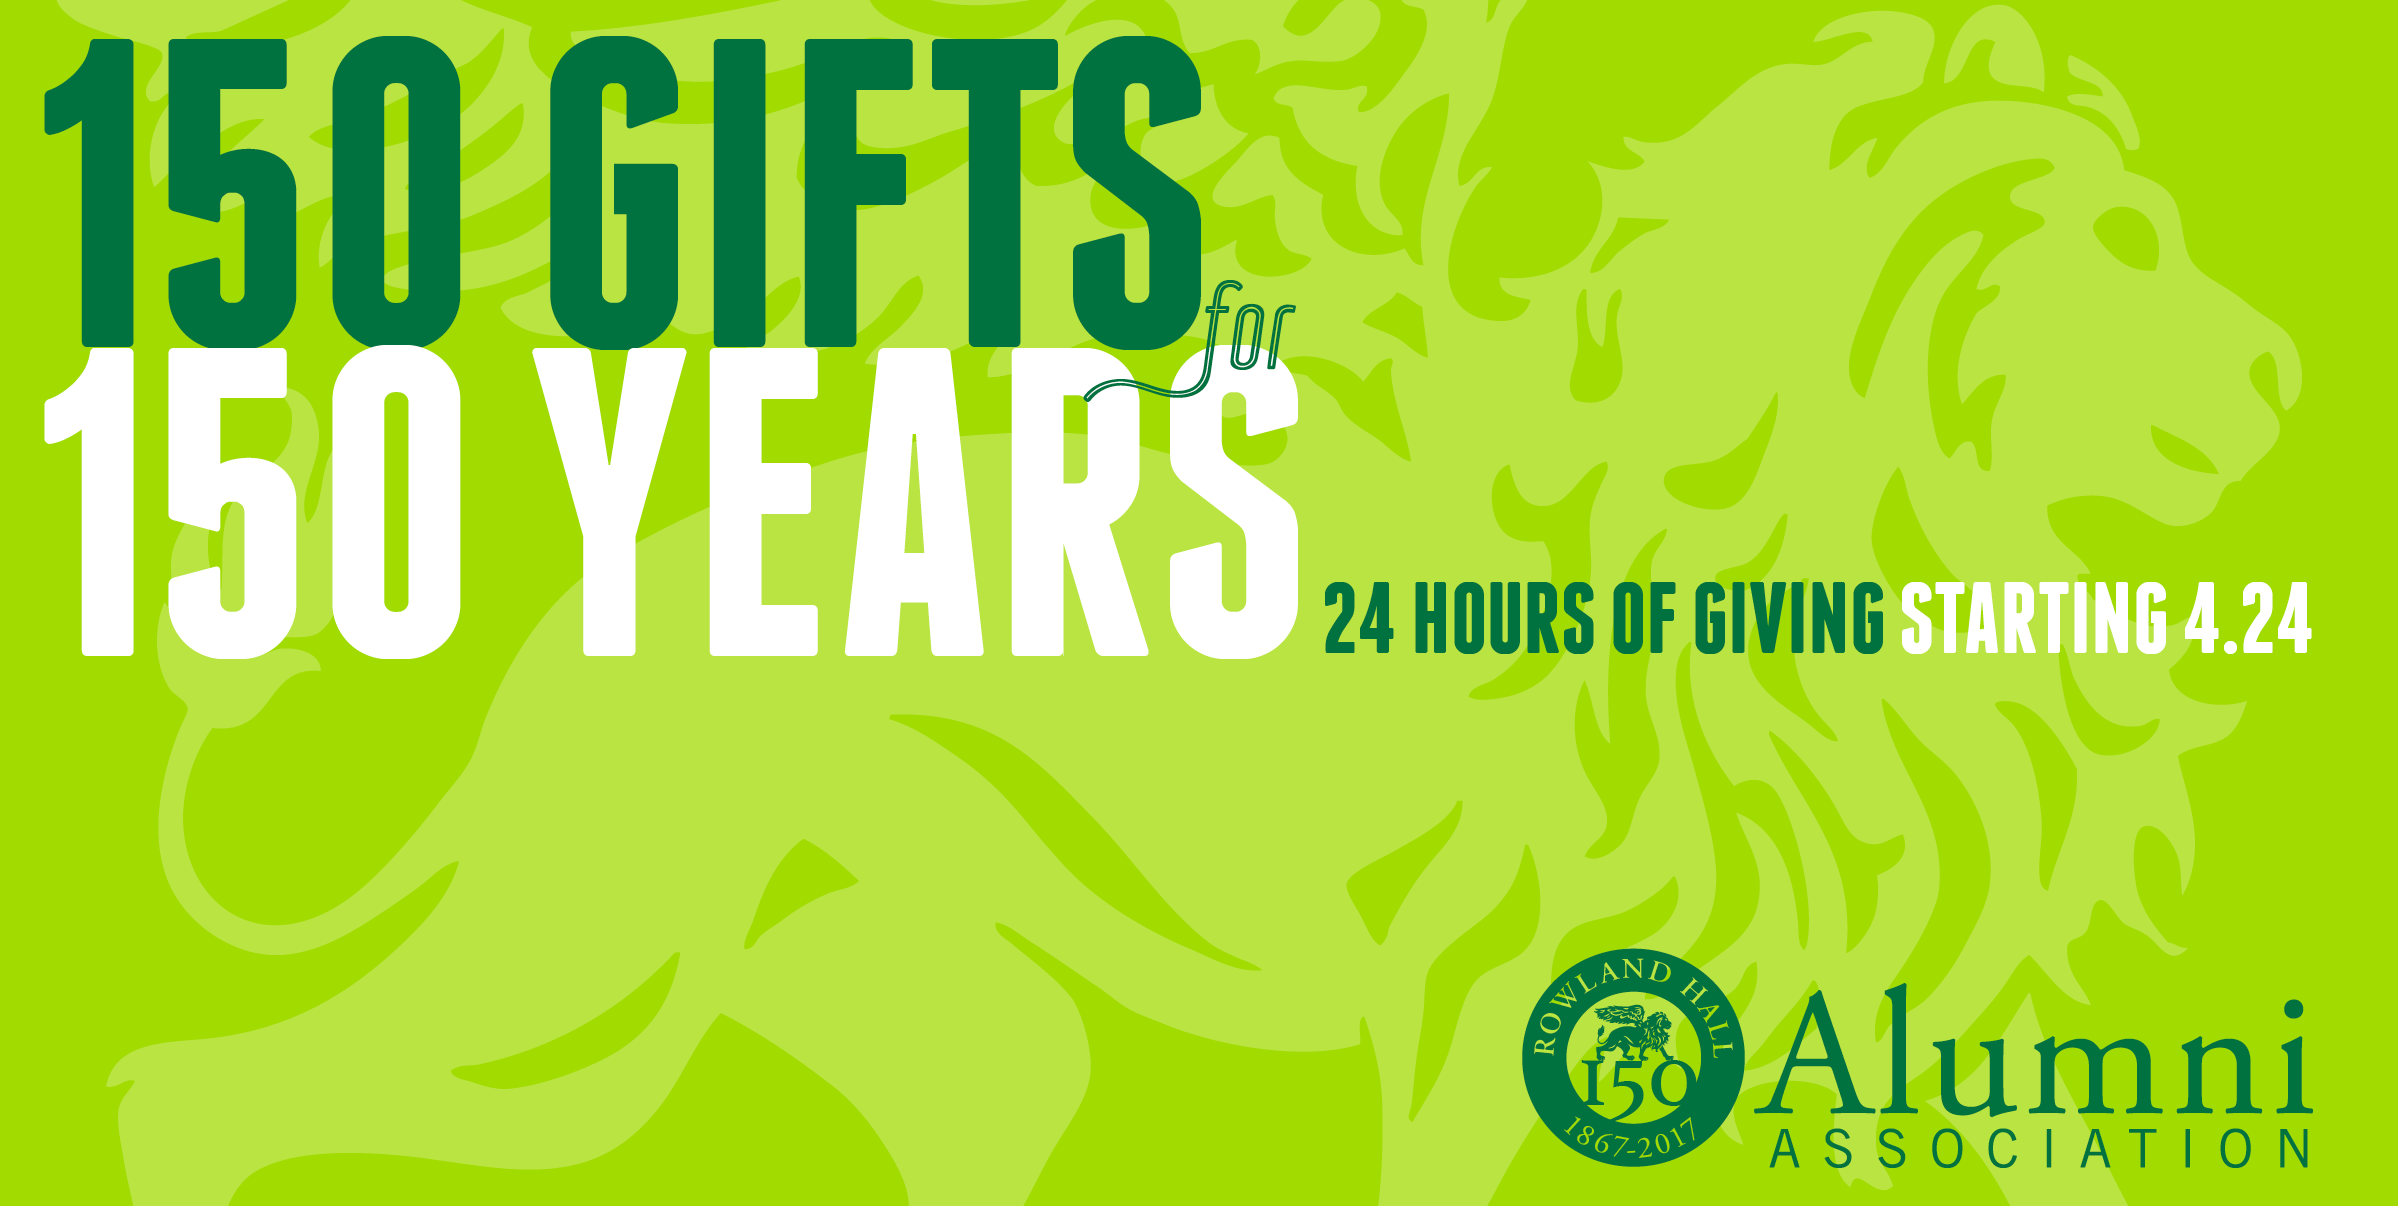 Graphic: 150 Gifts for 150 Years—24 Hours of Giving Starting April 24